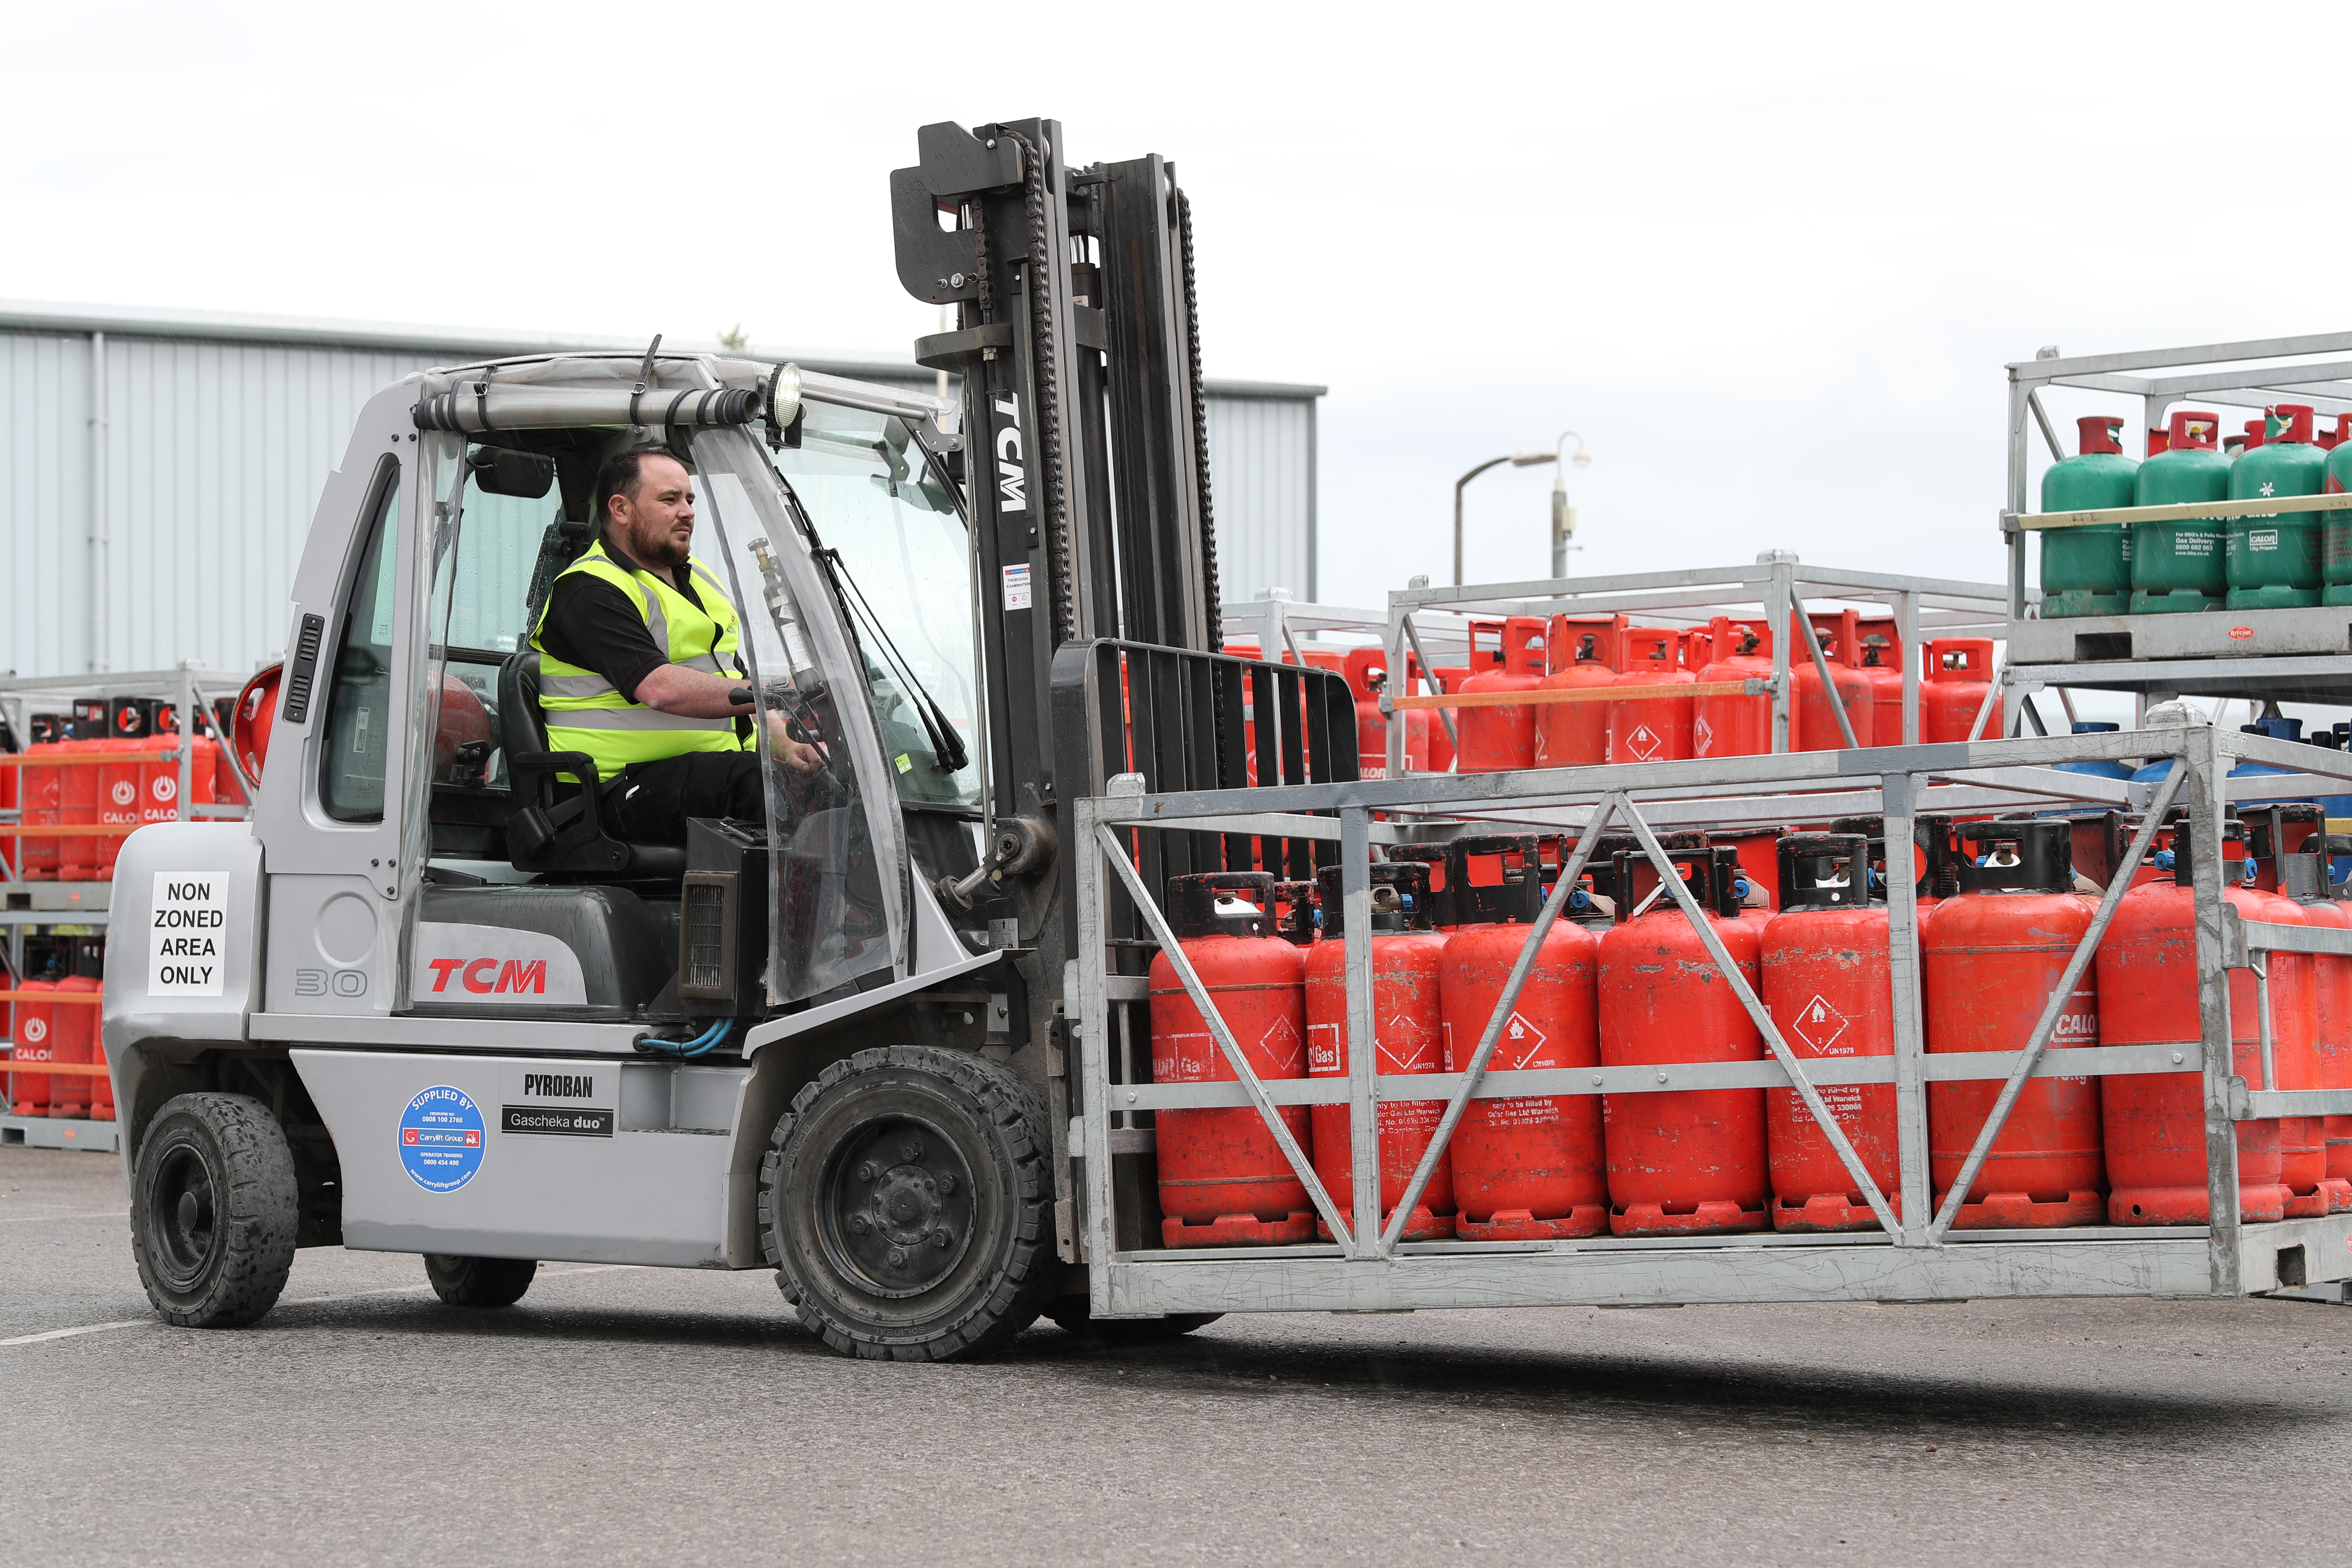 FLT transporting Calor Gas cylinders